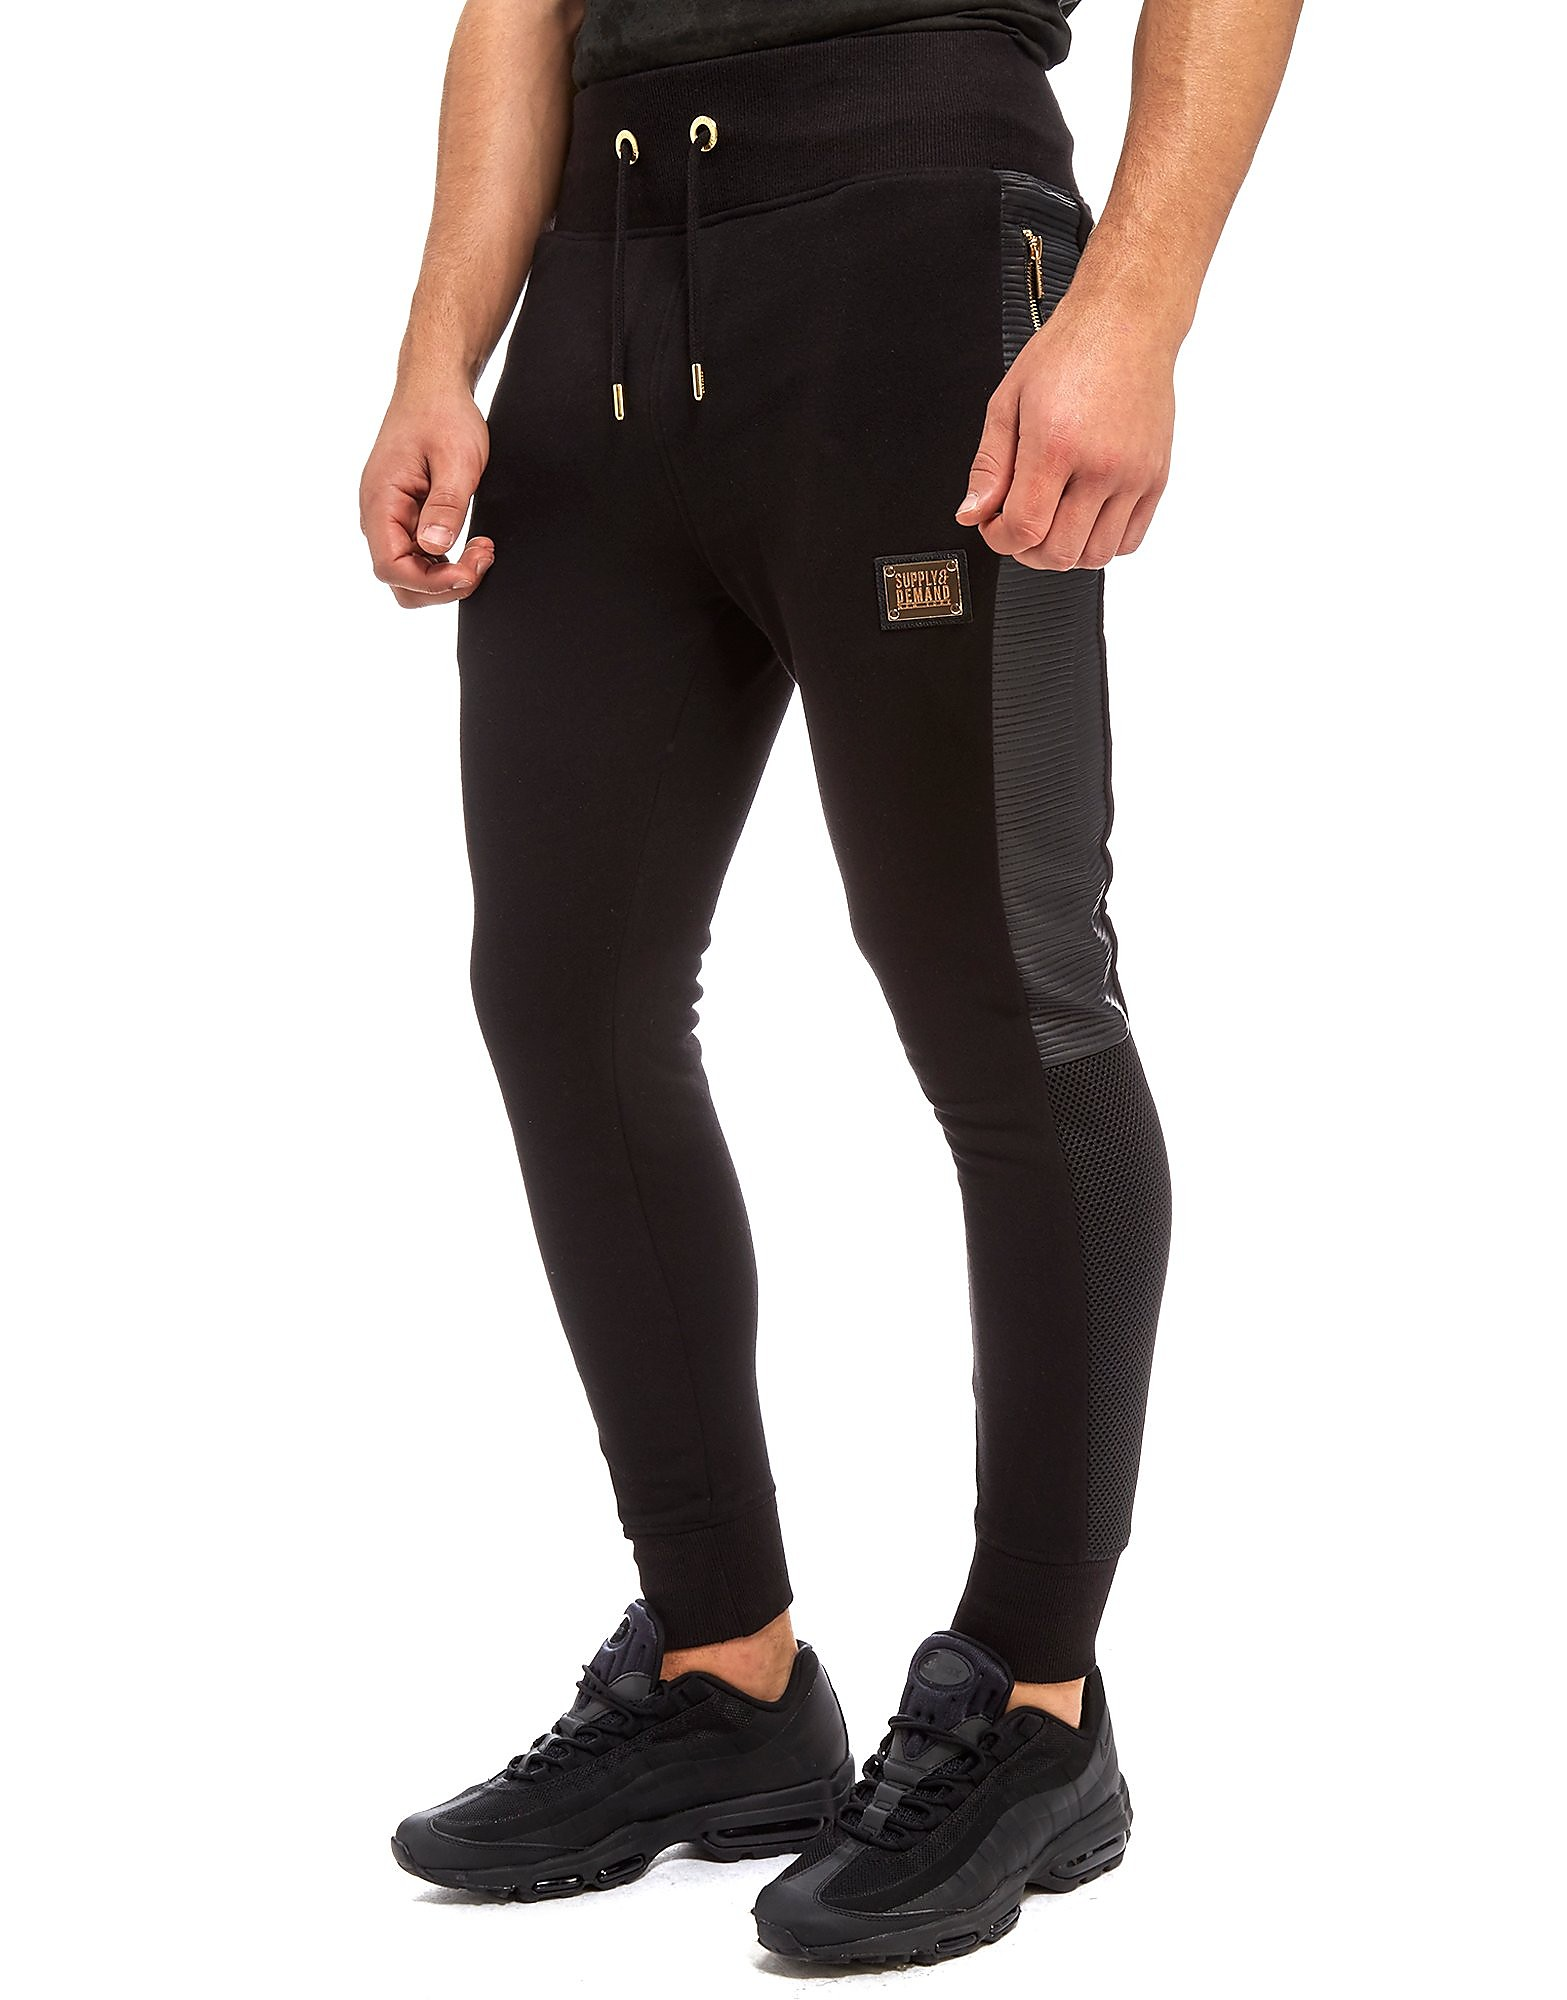 Supply & Demand Lazaro Joggers - Only at JD, Black